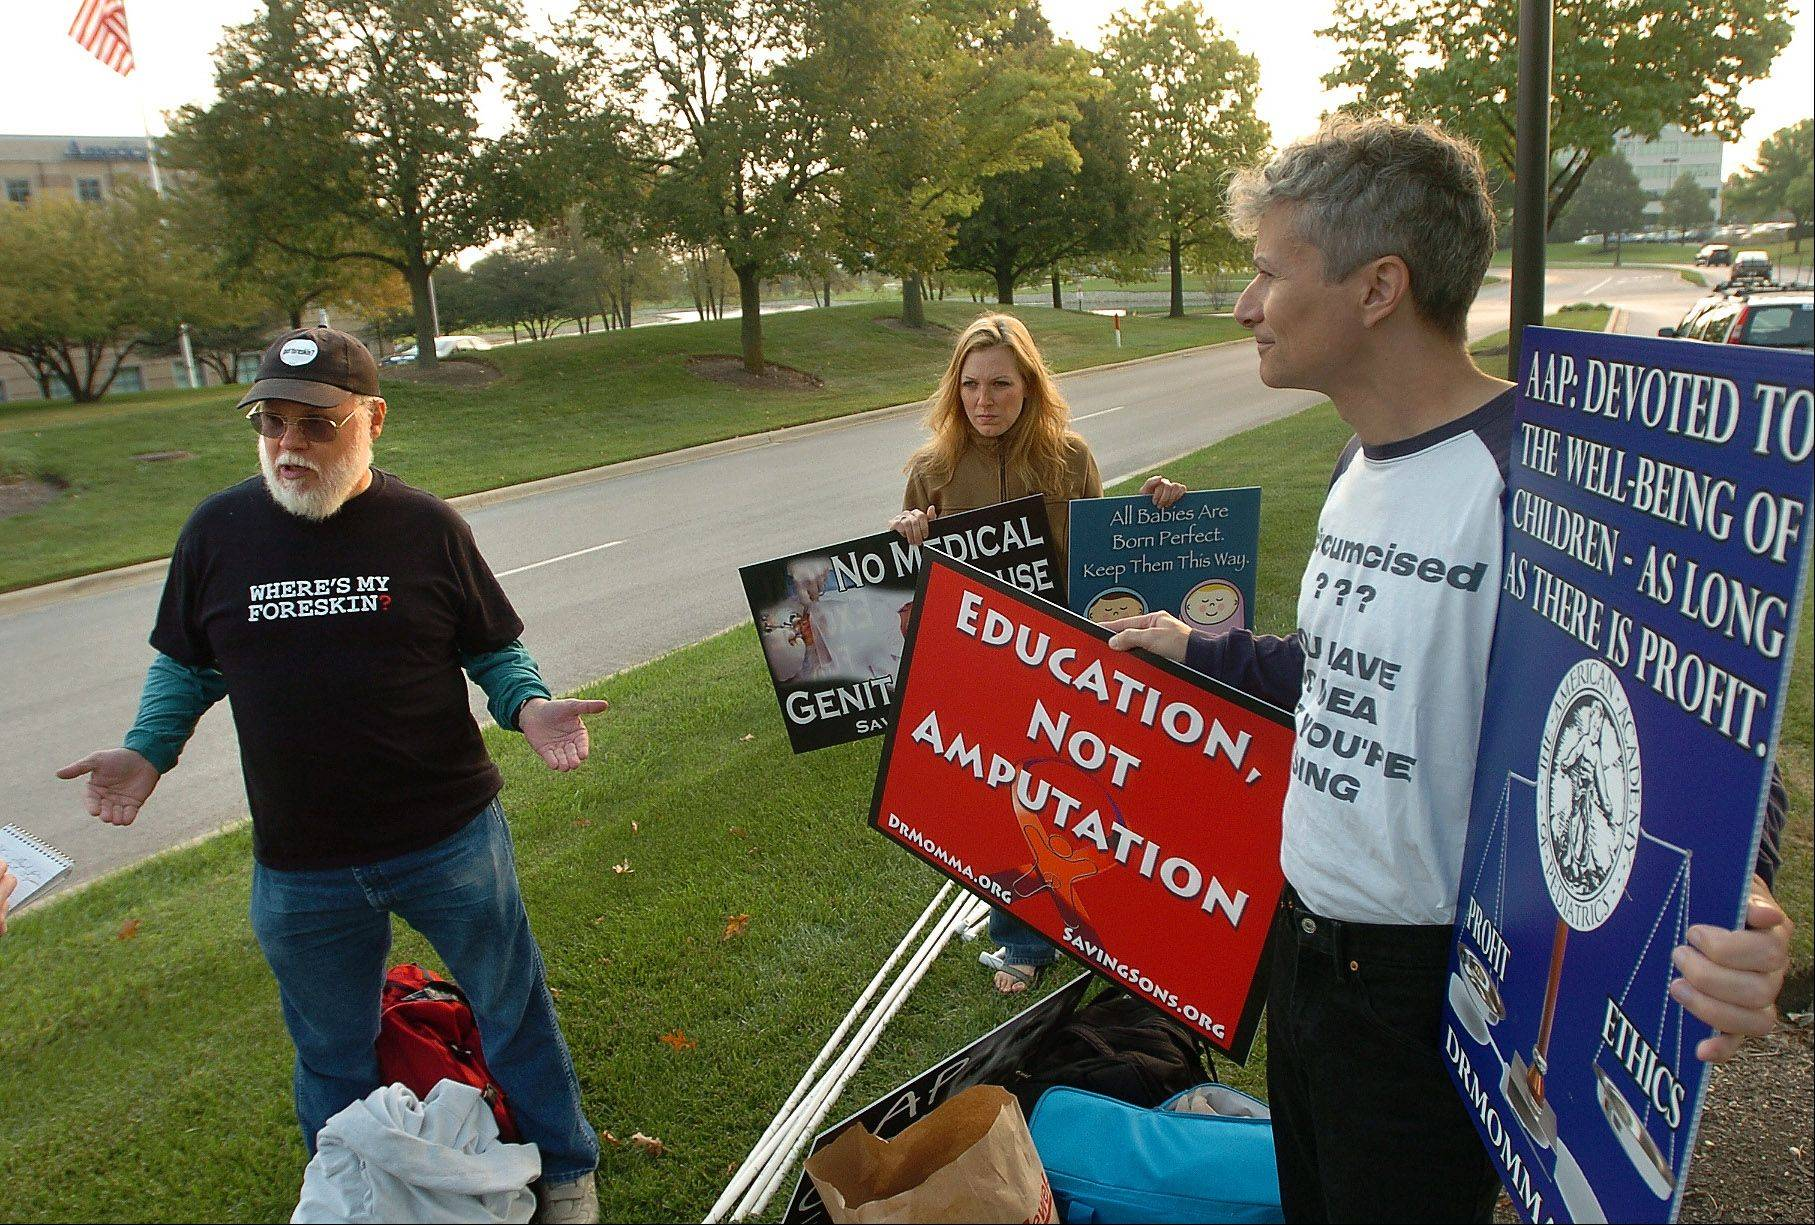 From left, Dan Strandjord, Erica Wijenayaka and Ron Low, were among a group protesting the American Academy of Pediatrics' stance on circumcision at the association's Elk Grove Village headquarters Monday morning.